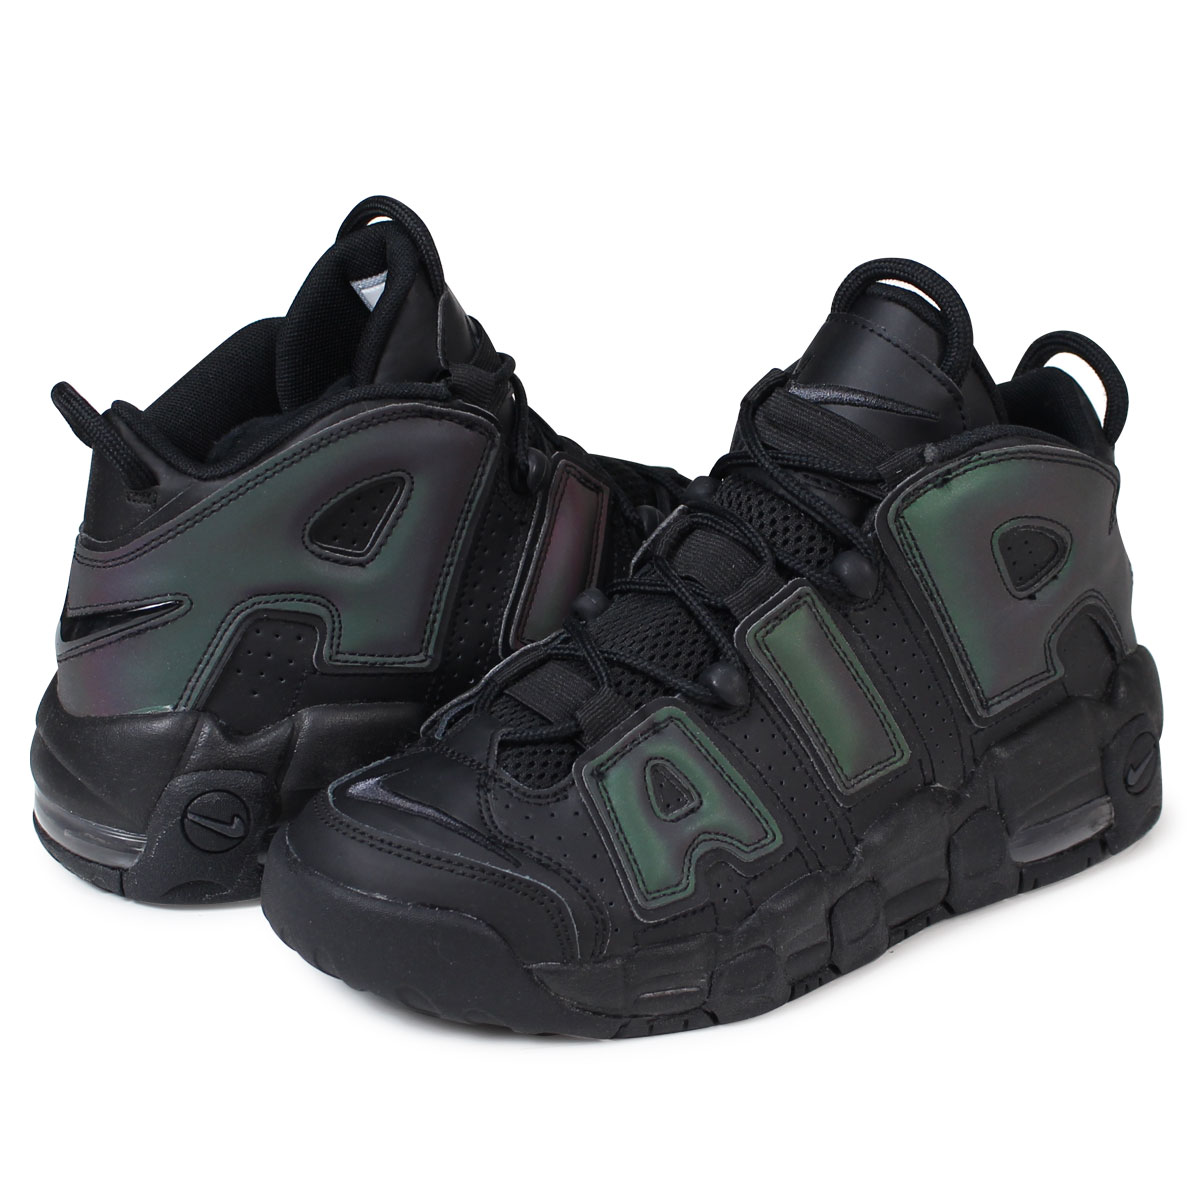 timeless design 5a324 68a00 NIKE AIR MORE UPTEMPO SE GS Nike air more up tempo Ladys sneakers  922,845-001 shoes black load planned Shinnyu load in reservation product  1228 ...